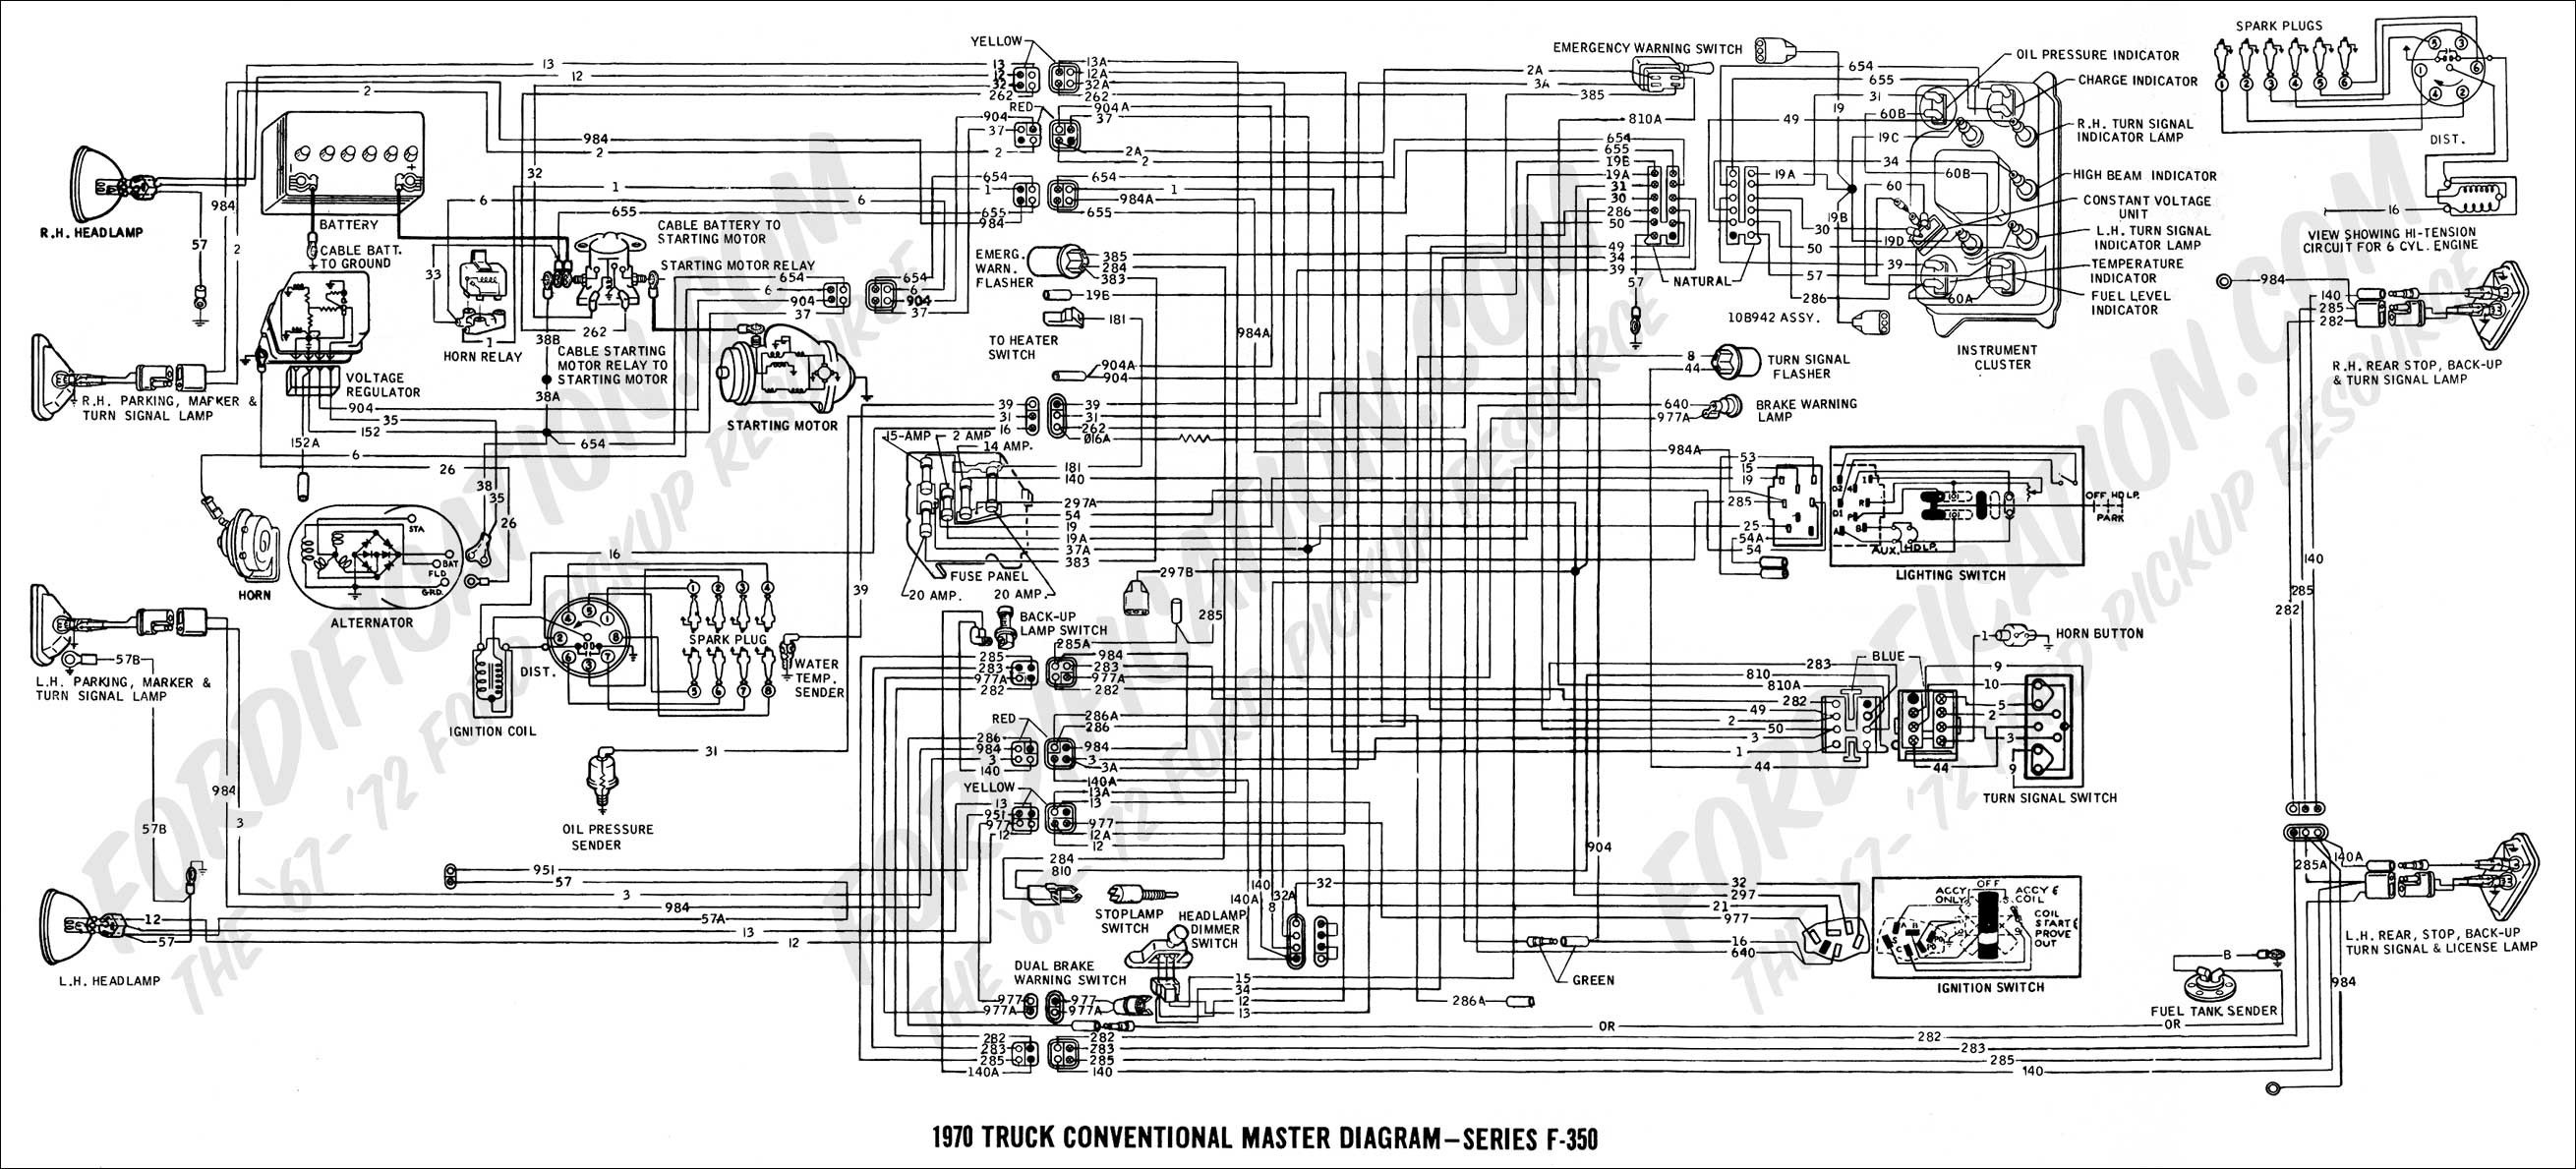 Wiring Diagram For Trailer Harness New Ford F350 Wiring Diagram About Wiring • Gatbook